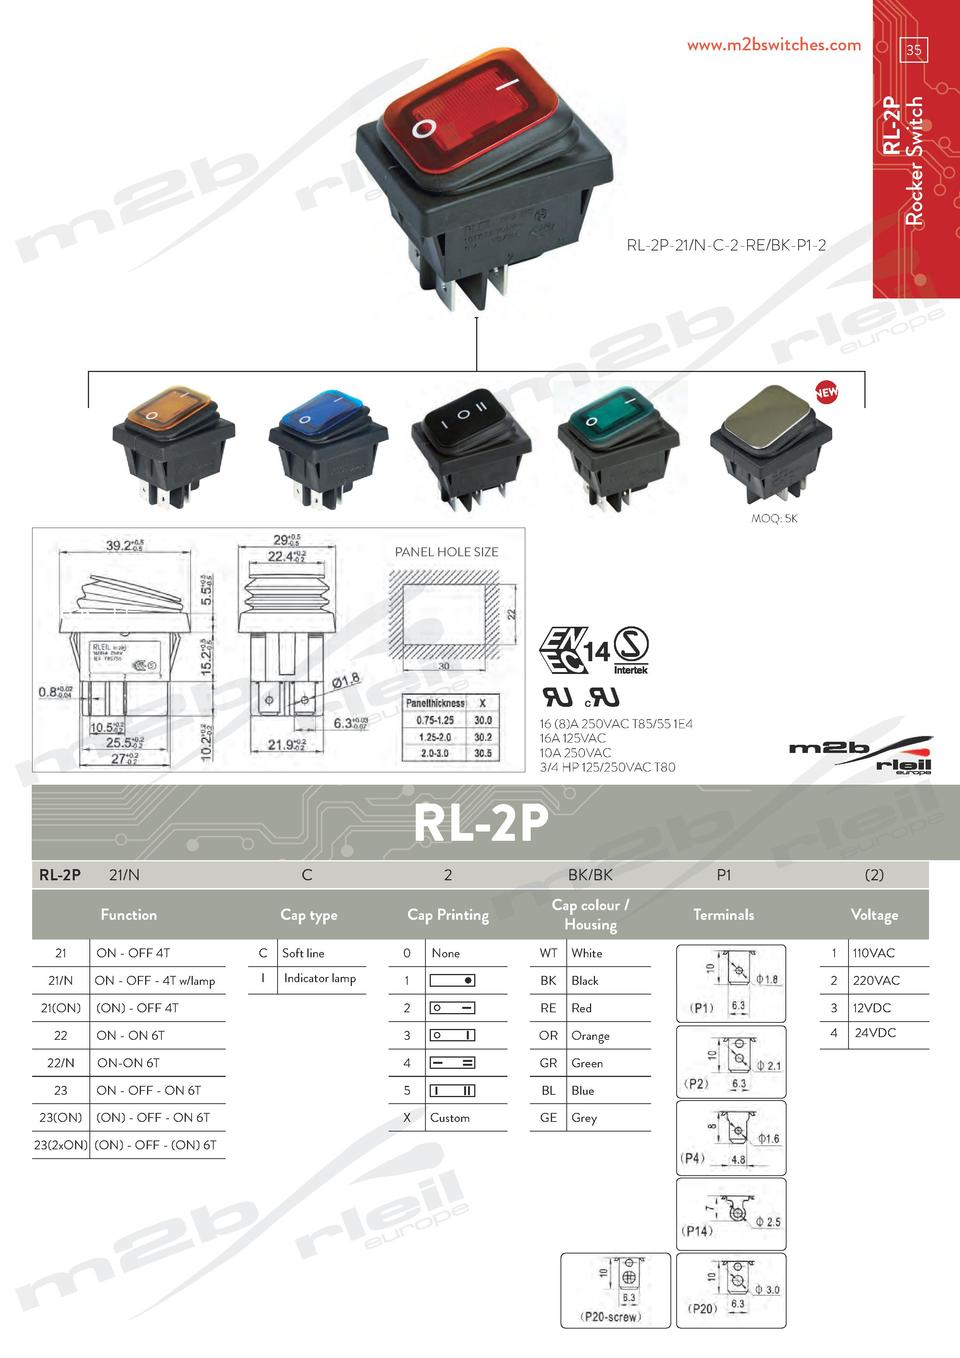 www.m2bswitches.com  RL-2P Rocker Switch  35  RL-2P-21 N-C-2-RE BK-P1-2  MOQ  5K  PANEL HOLE SIZE  our ideas     16  8 A 2...